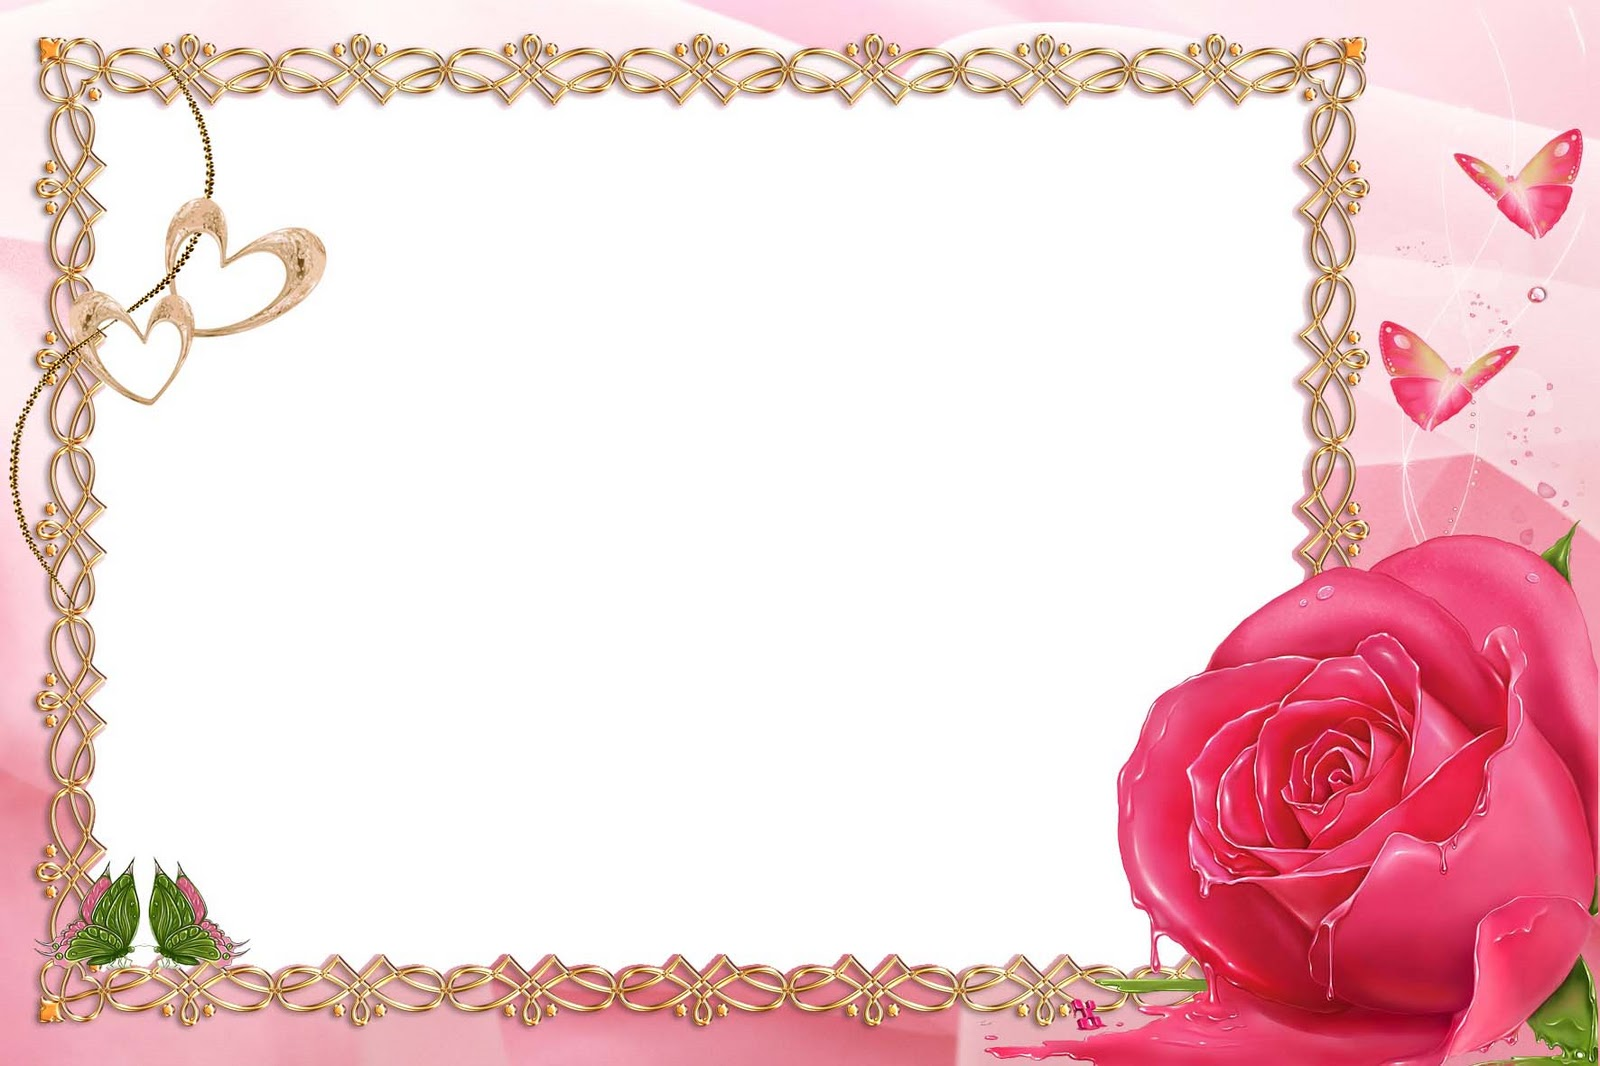 11 Picture Frames For Photoshop Download Images